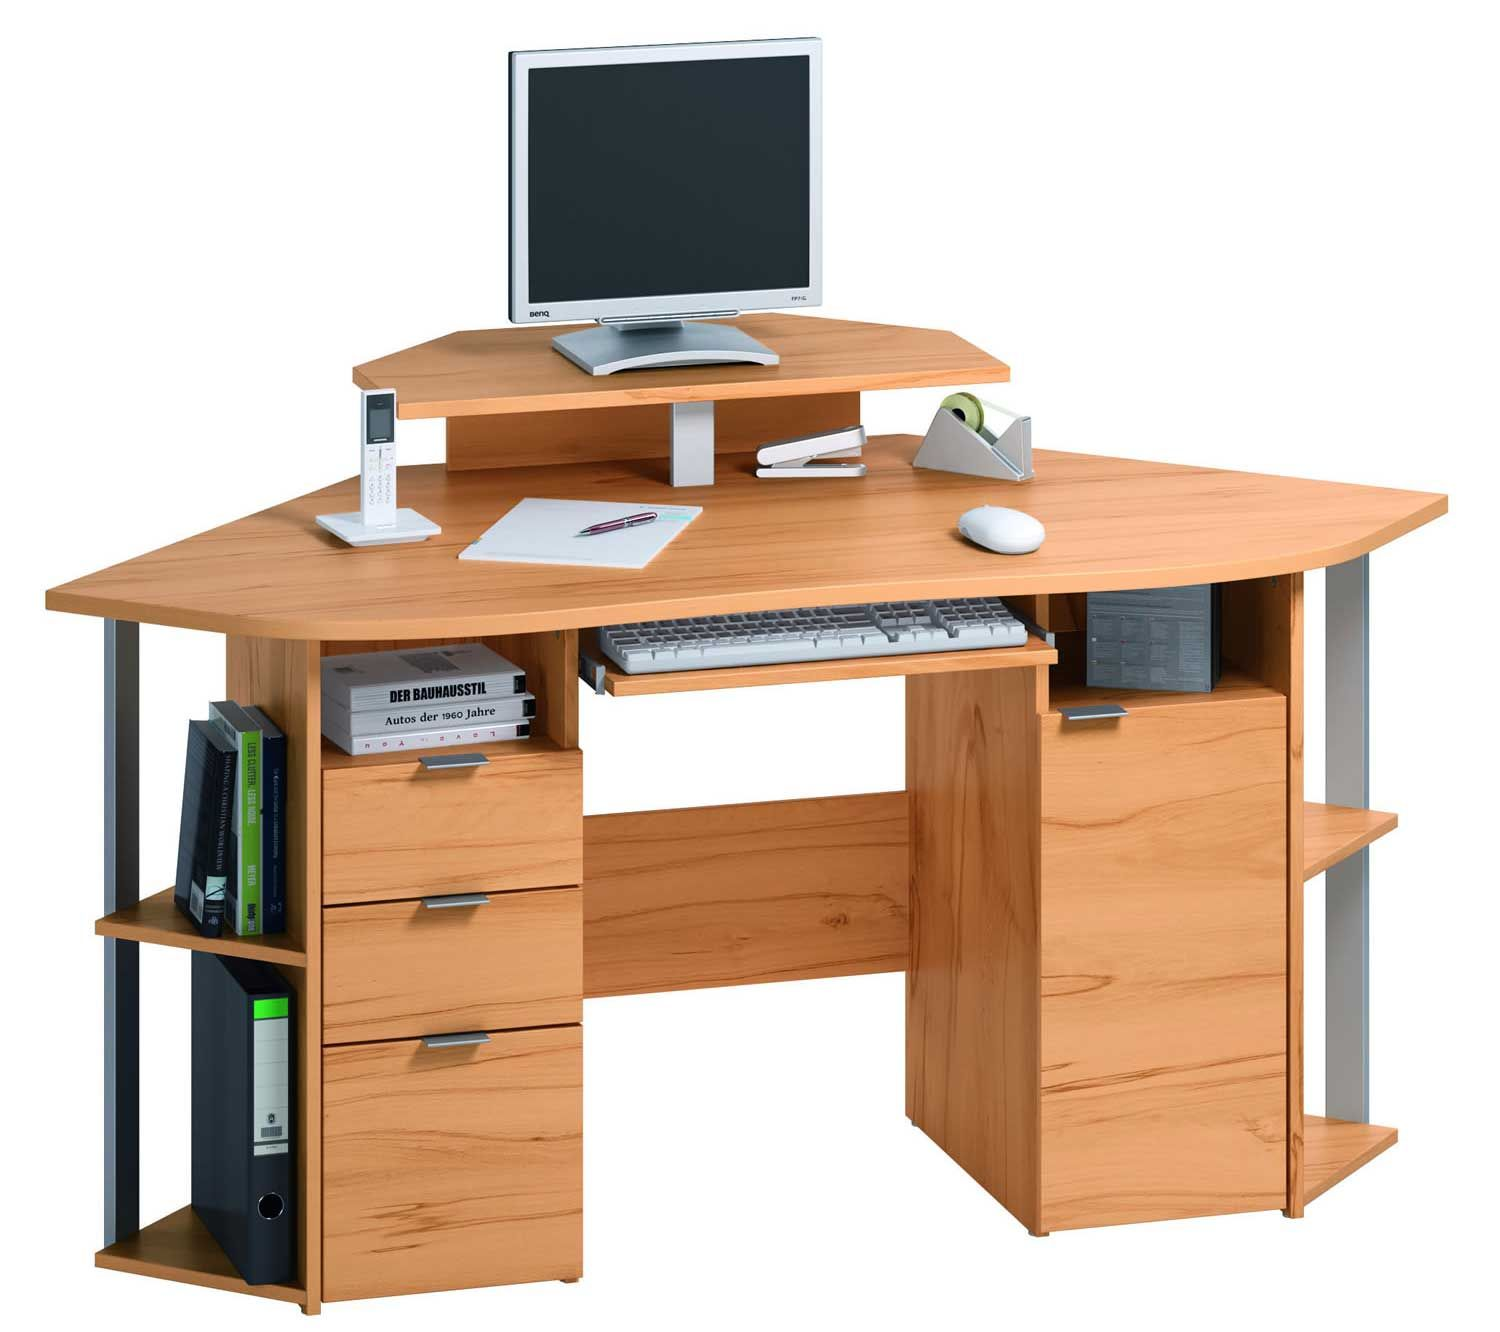 Bedroom Workstation Google Search Pinterest Bedrooms  # Dakar Table Tele En Bois Massif